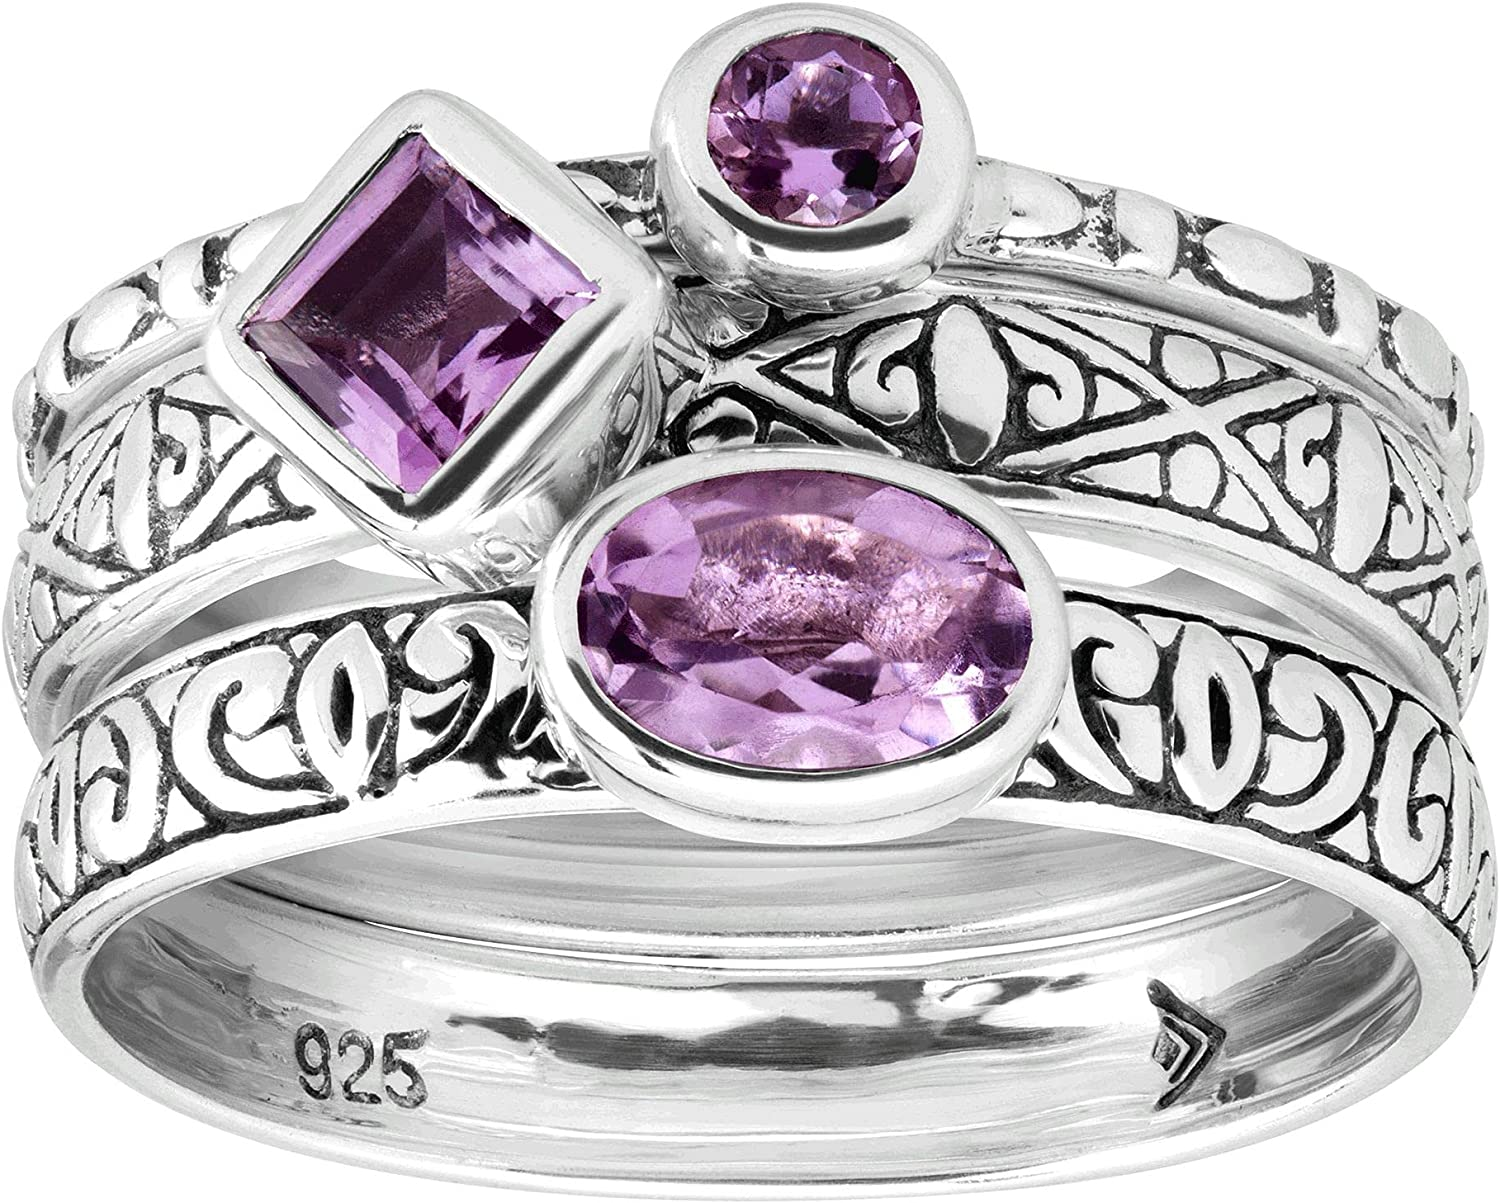 Free shipping New Silpada 'Maiden Voyage' Natural Amethyst Stacking in Rings Sterl Low price